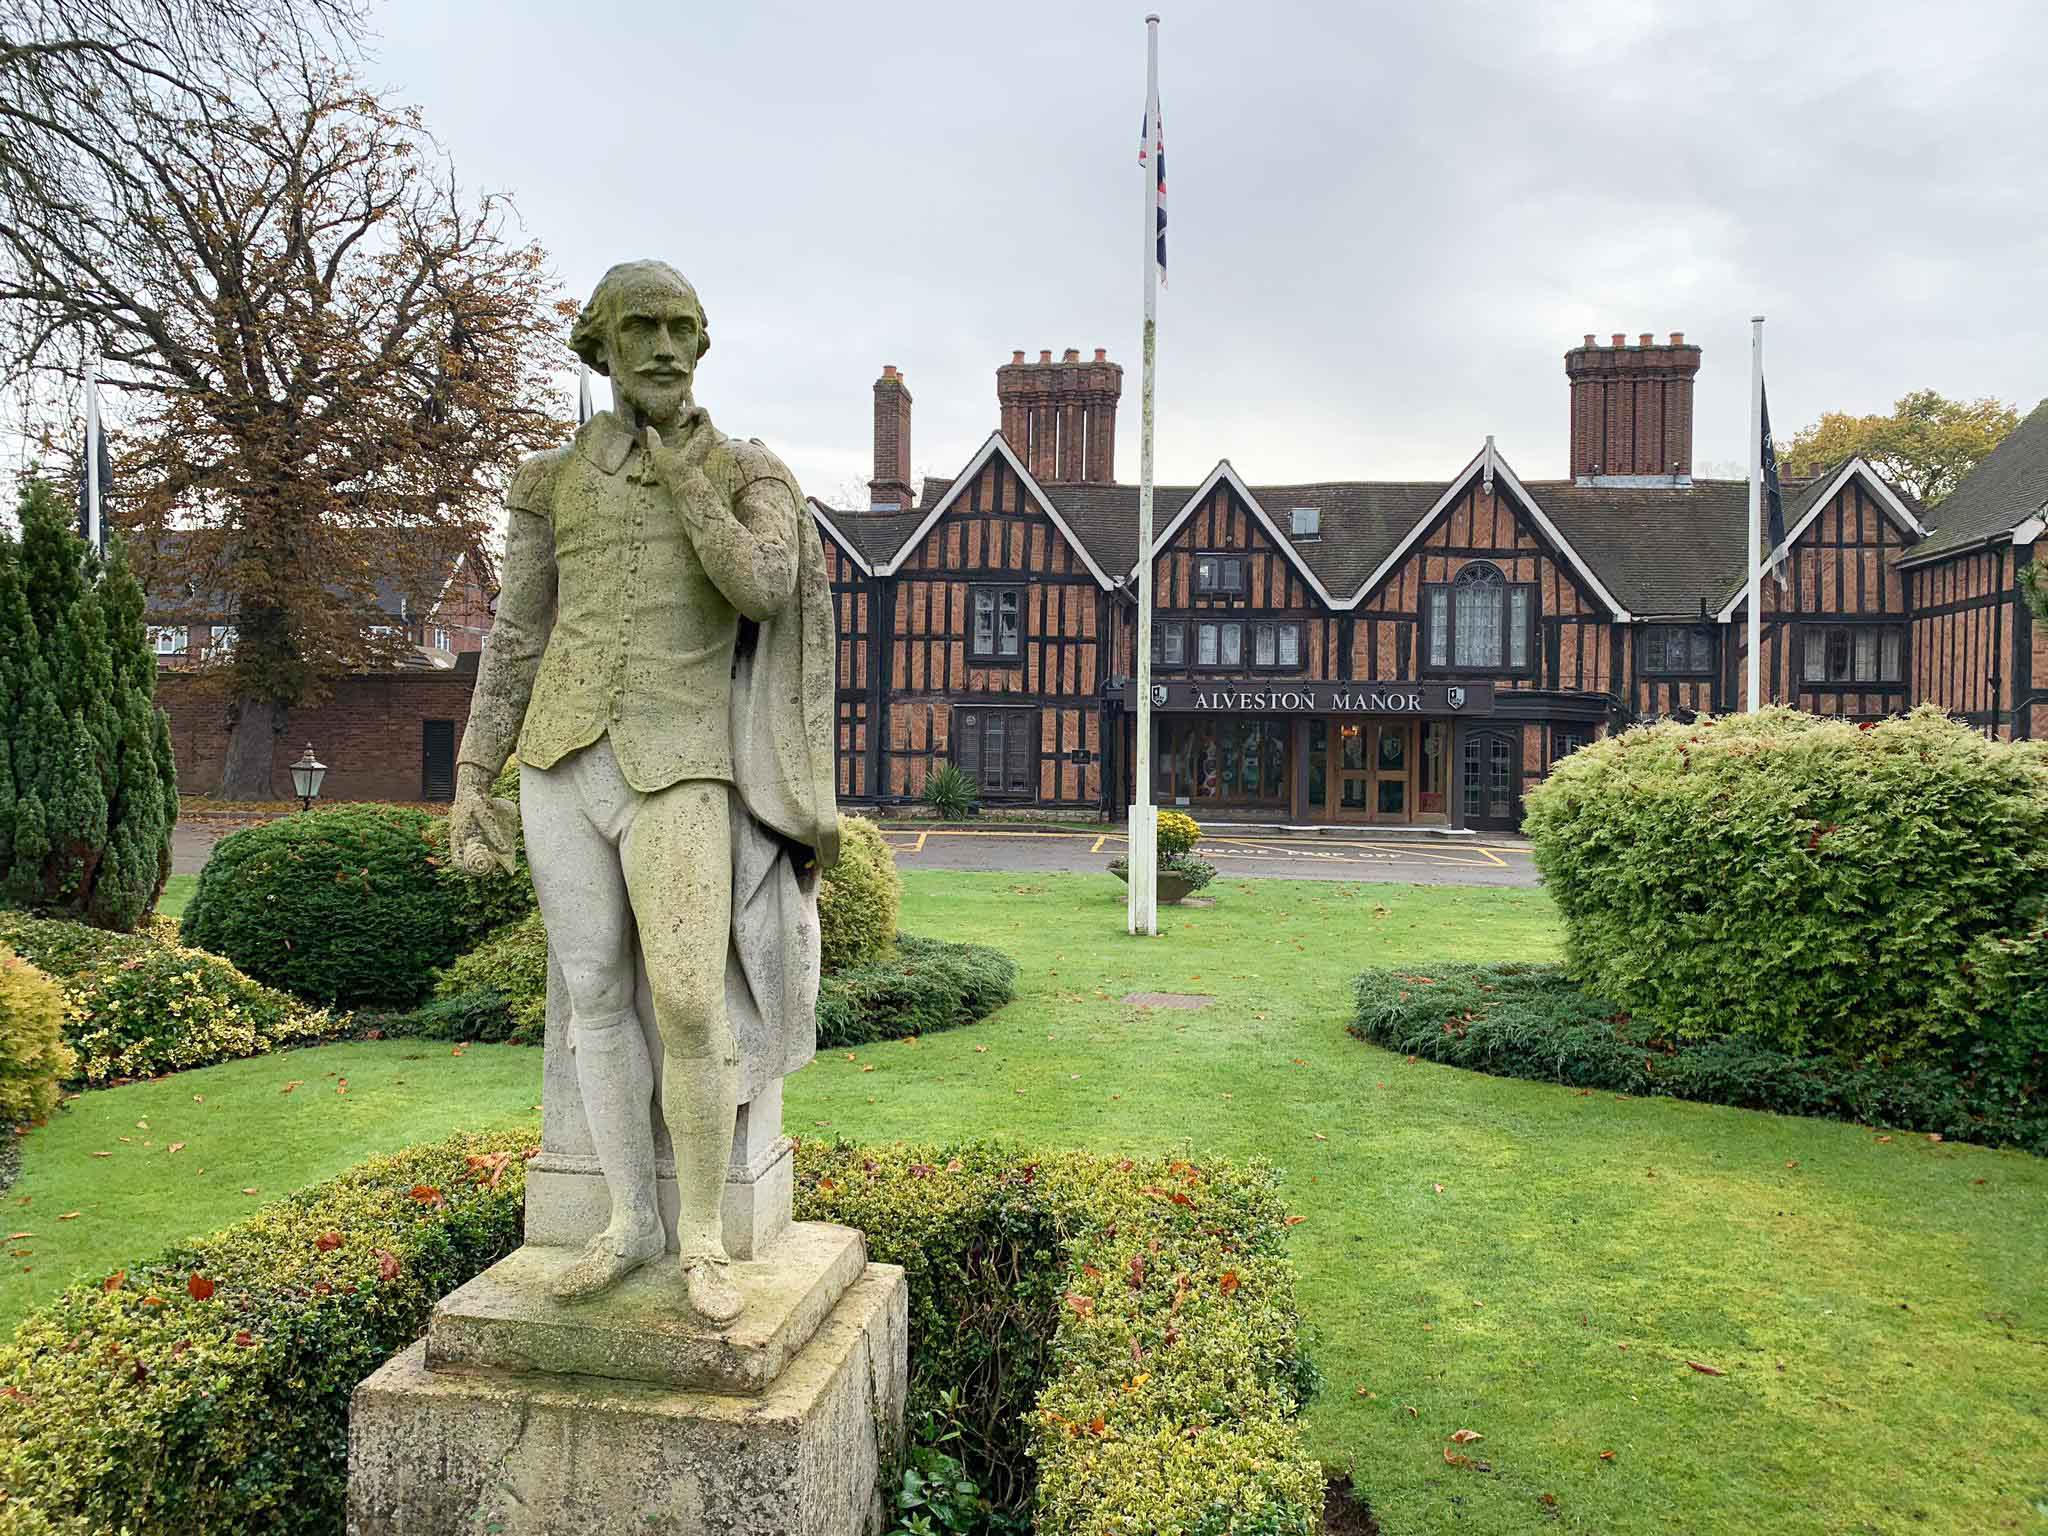 During the Early Shakespeare class trip to Stratford-upon-Avon, students stayed at the Macdonald Alveston Manor, where supposedly A Midsummer Night's Dream was first performed.